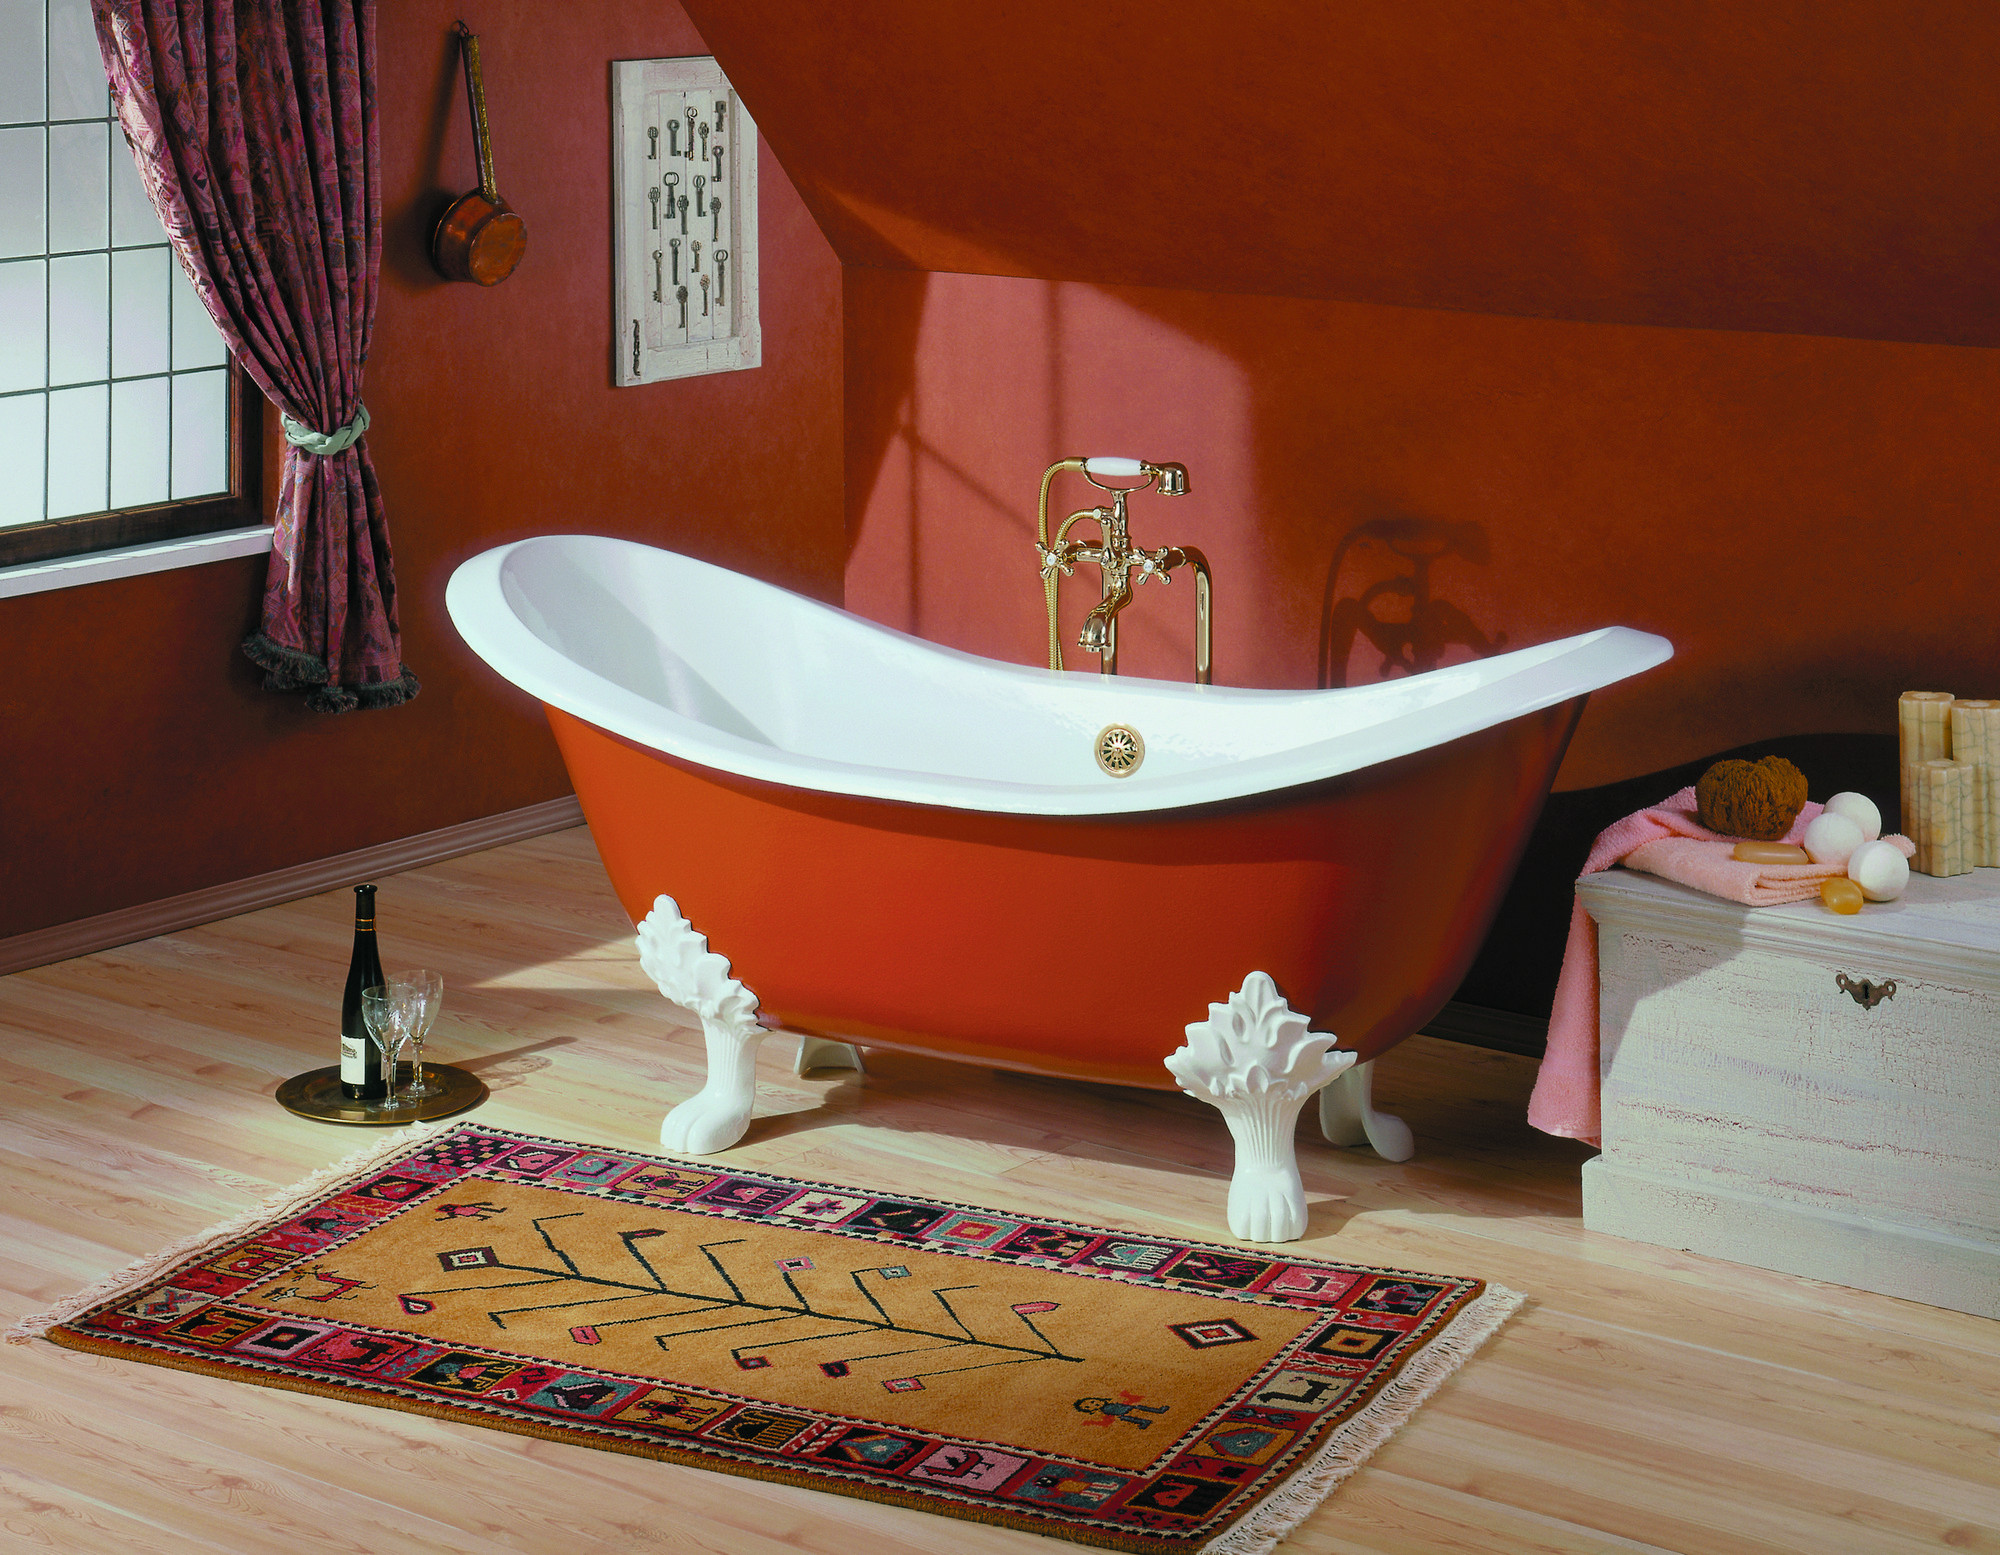 Cheviot 2167-BB-..-6 Regency Cast Iron Bathtub with Lion Feet and 6 Inch Drilling